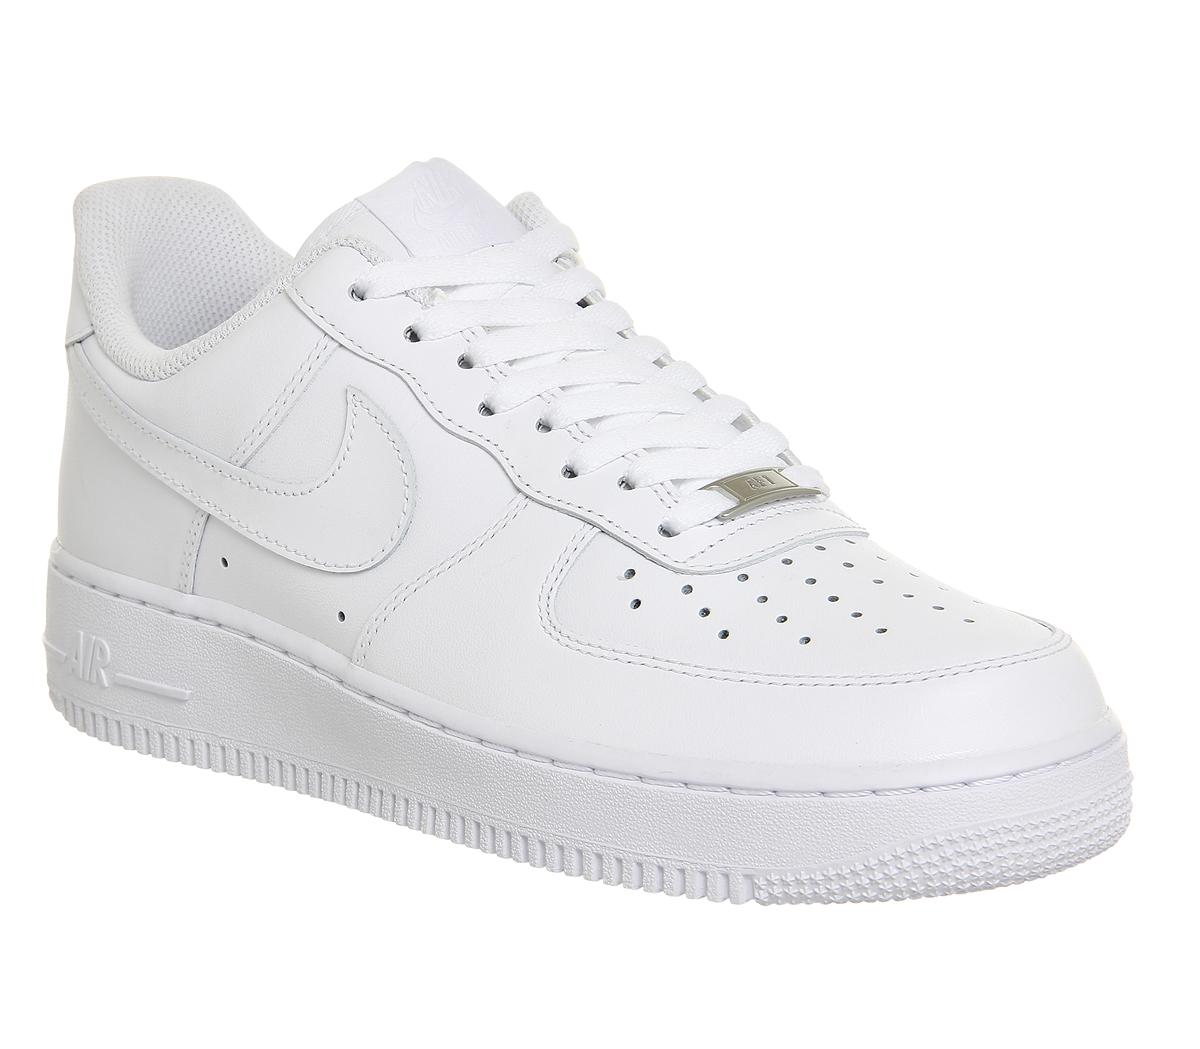 Nike Air Force 1 07 Premium Women/'s ® Oatmeal White NEW UK Sizes  5  /&  6.5